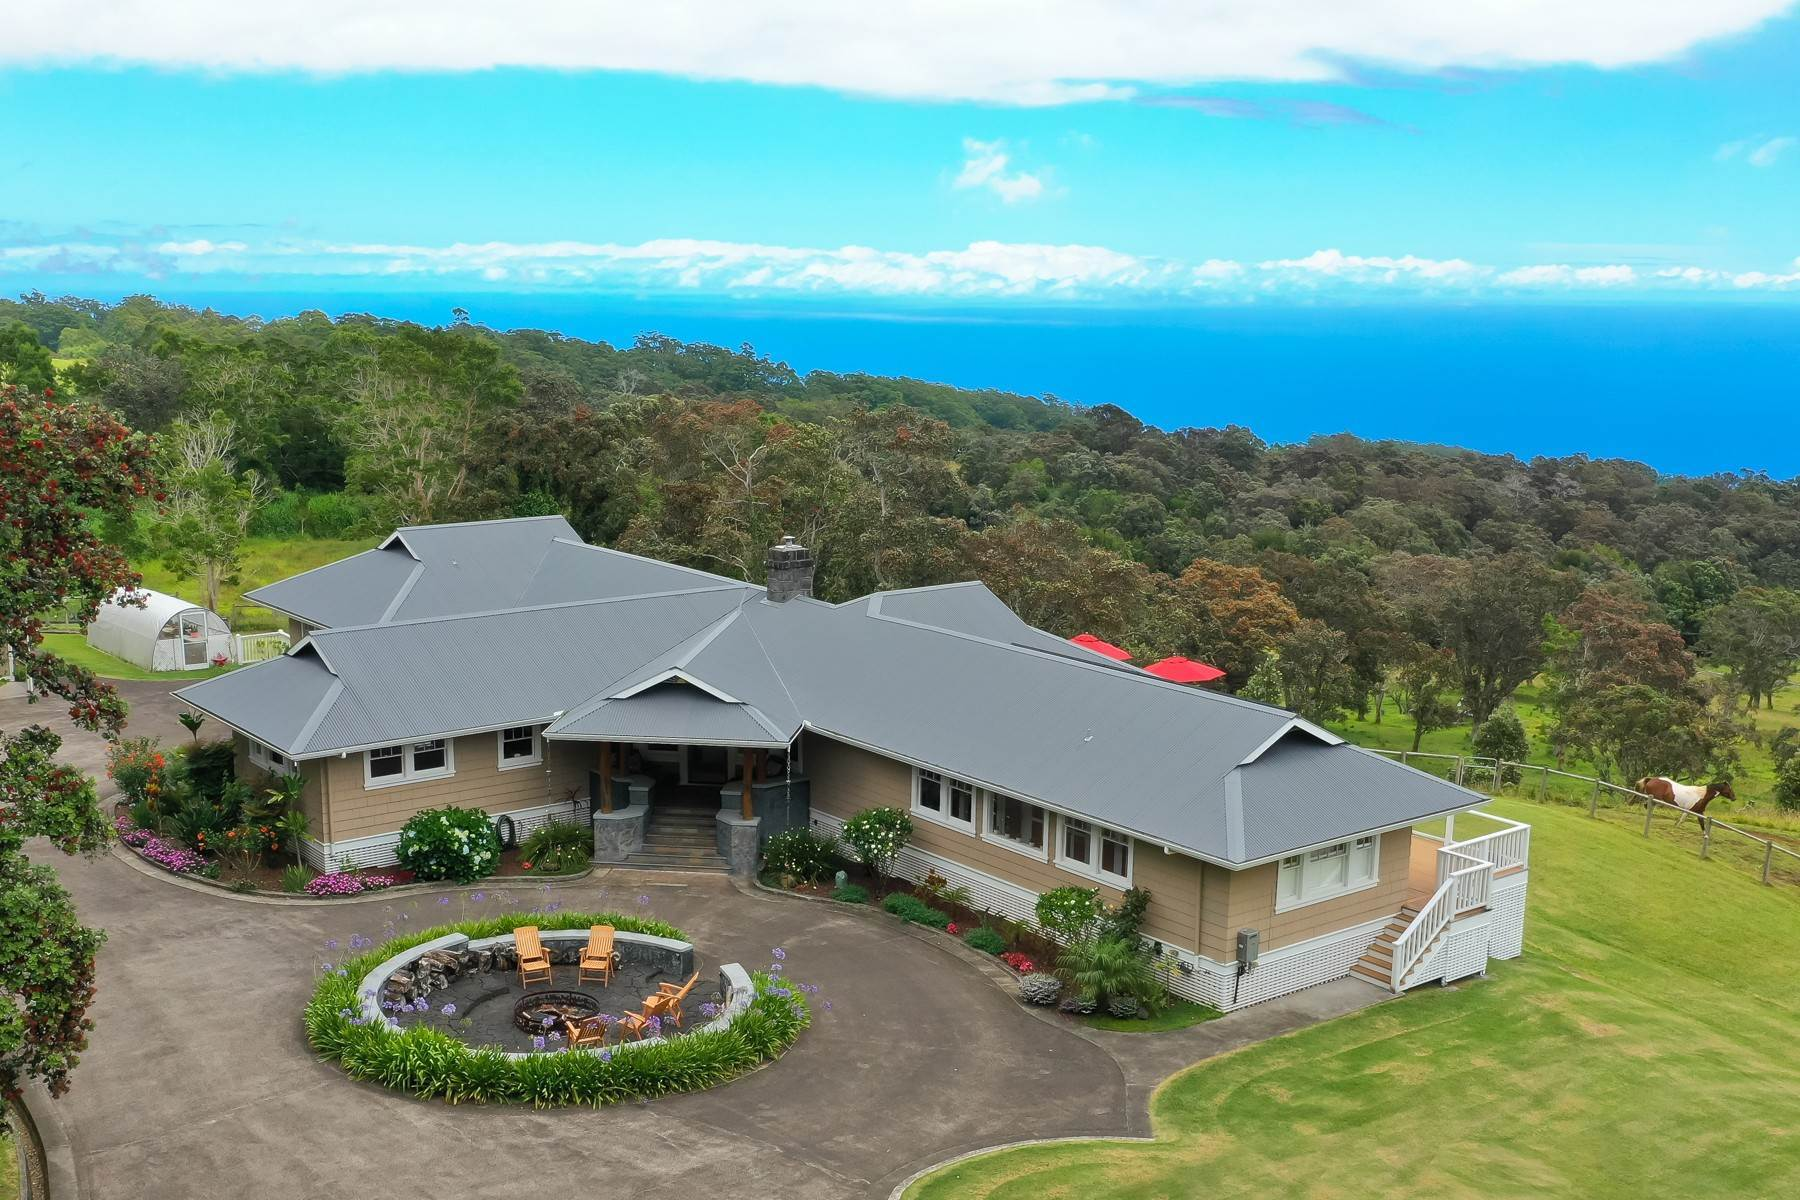 Multi-Family Homes for Sale at 29 acre Hamakua Ranch Estate with Mauna Kea and Pacific Ocean Views... 42-1952 Kalapahapuu Rd. Paauilo, Hawaii 96776 United States